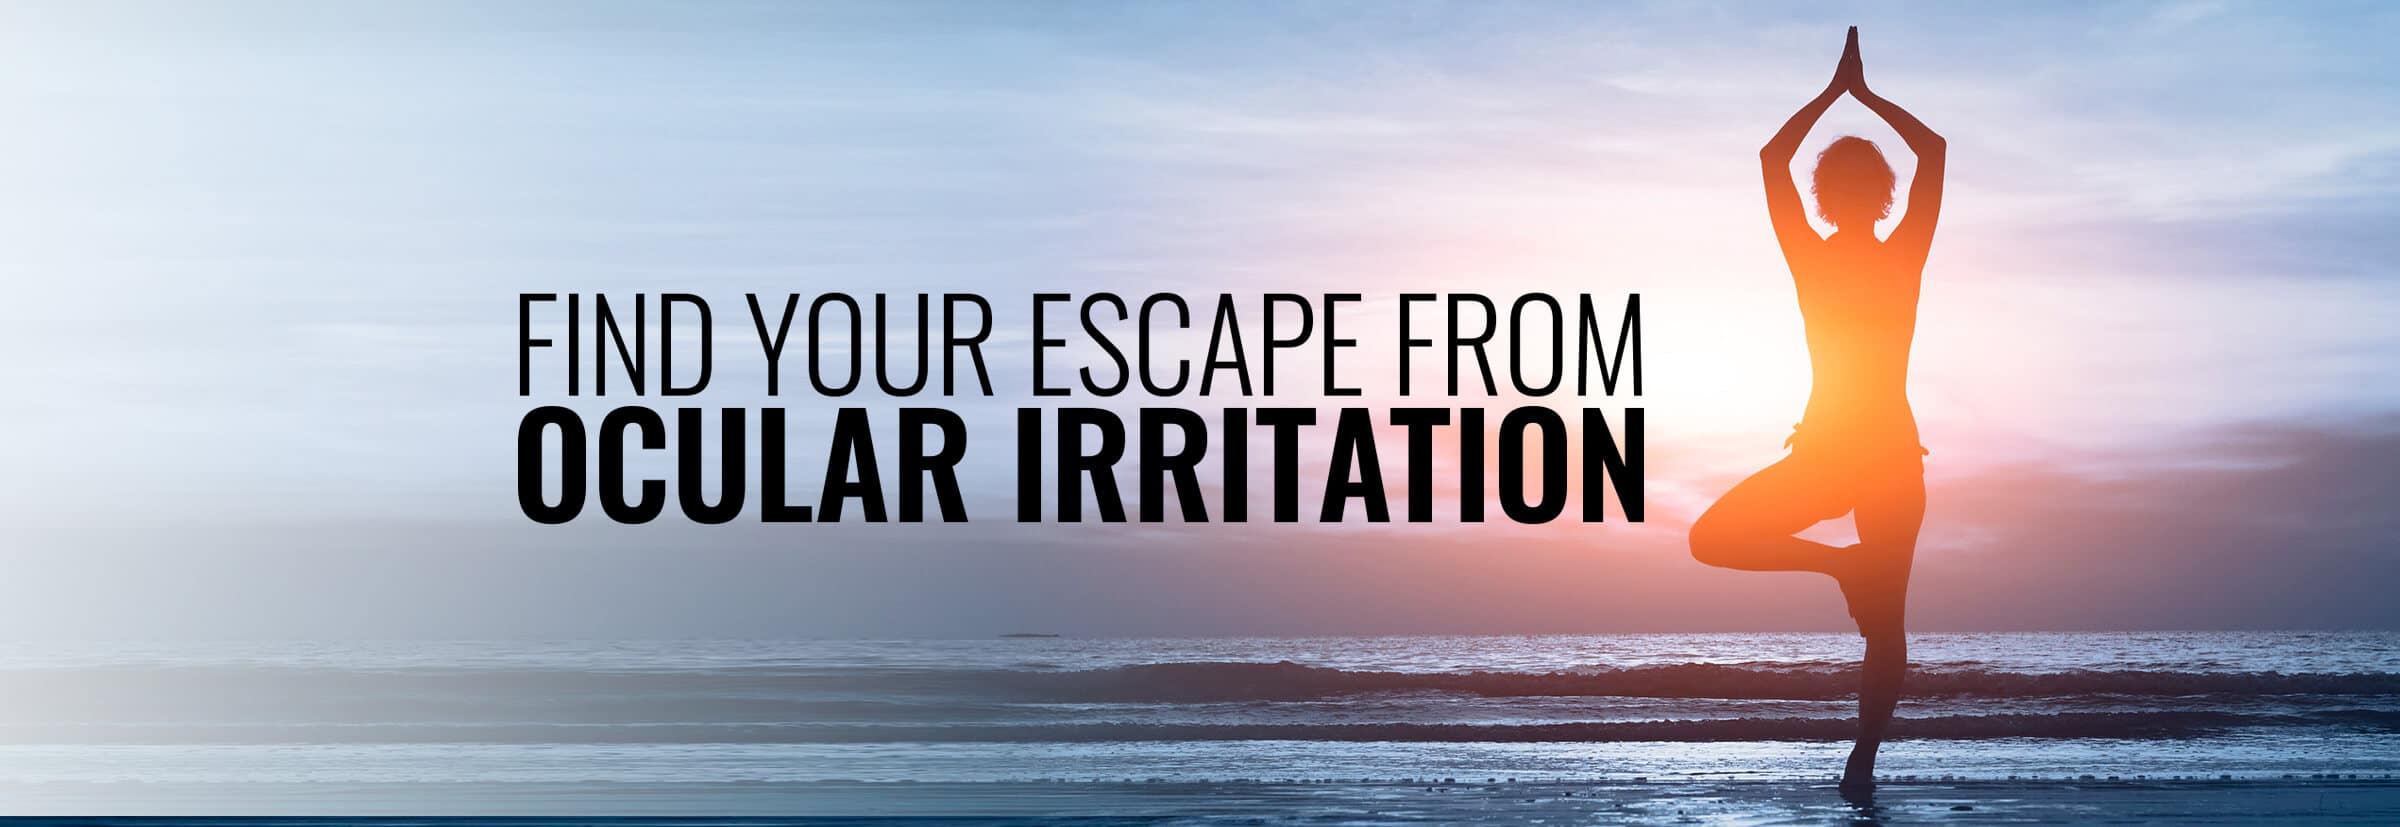 Find your escape from ocular irritation